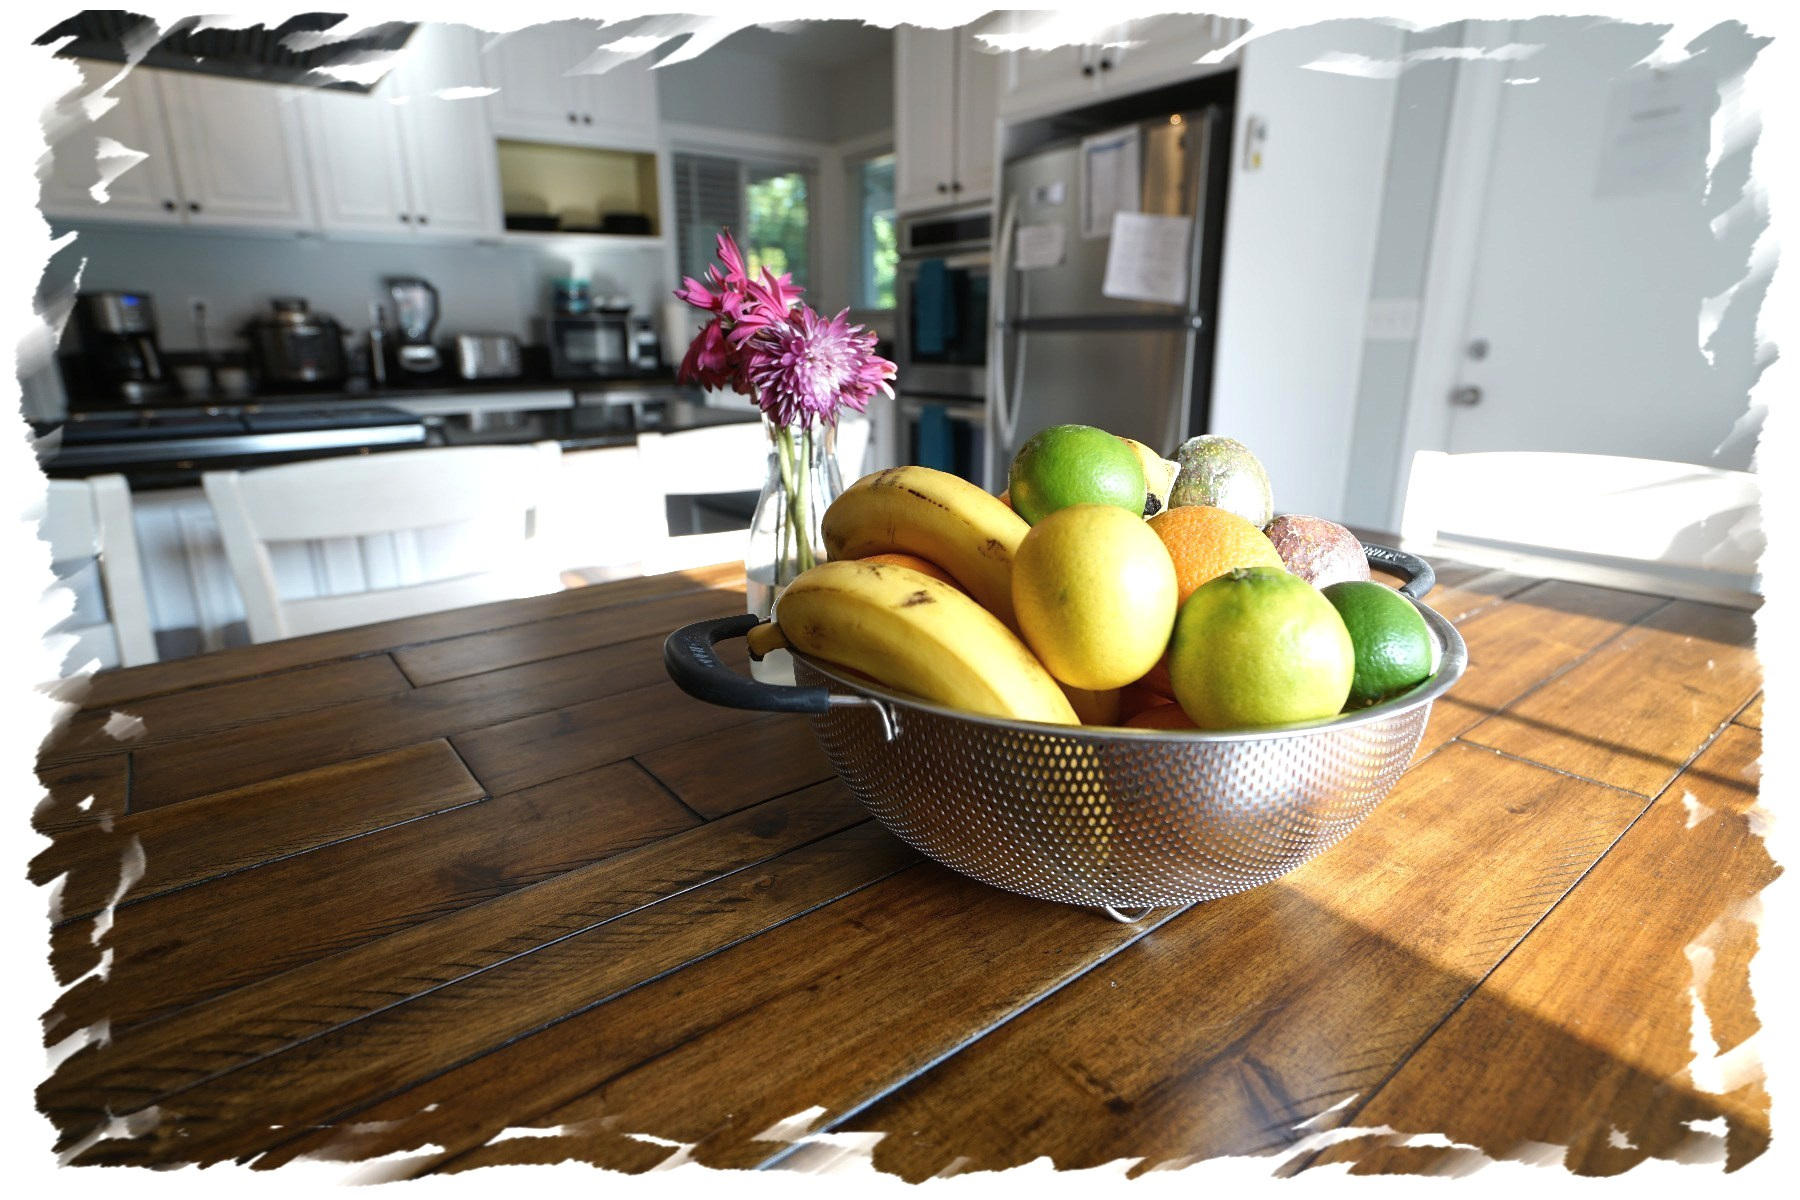 Kitchen fruit Gallery.jpg